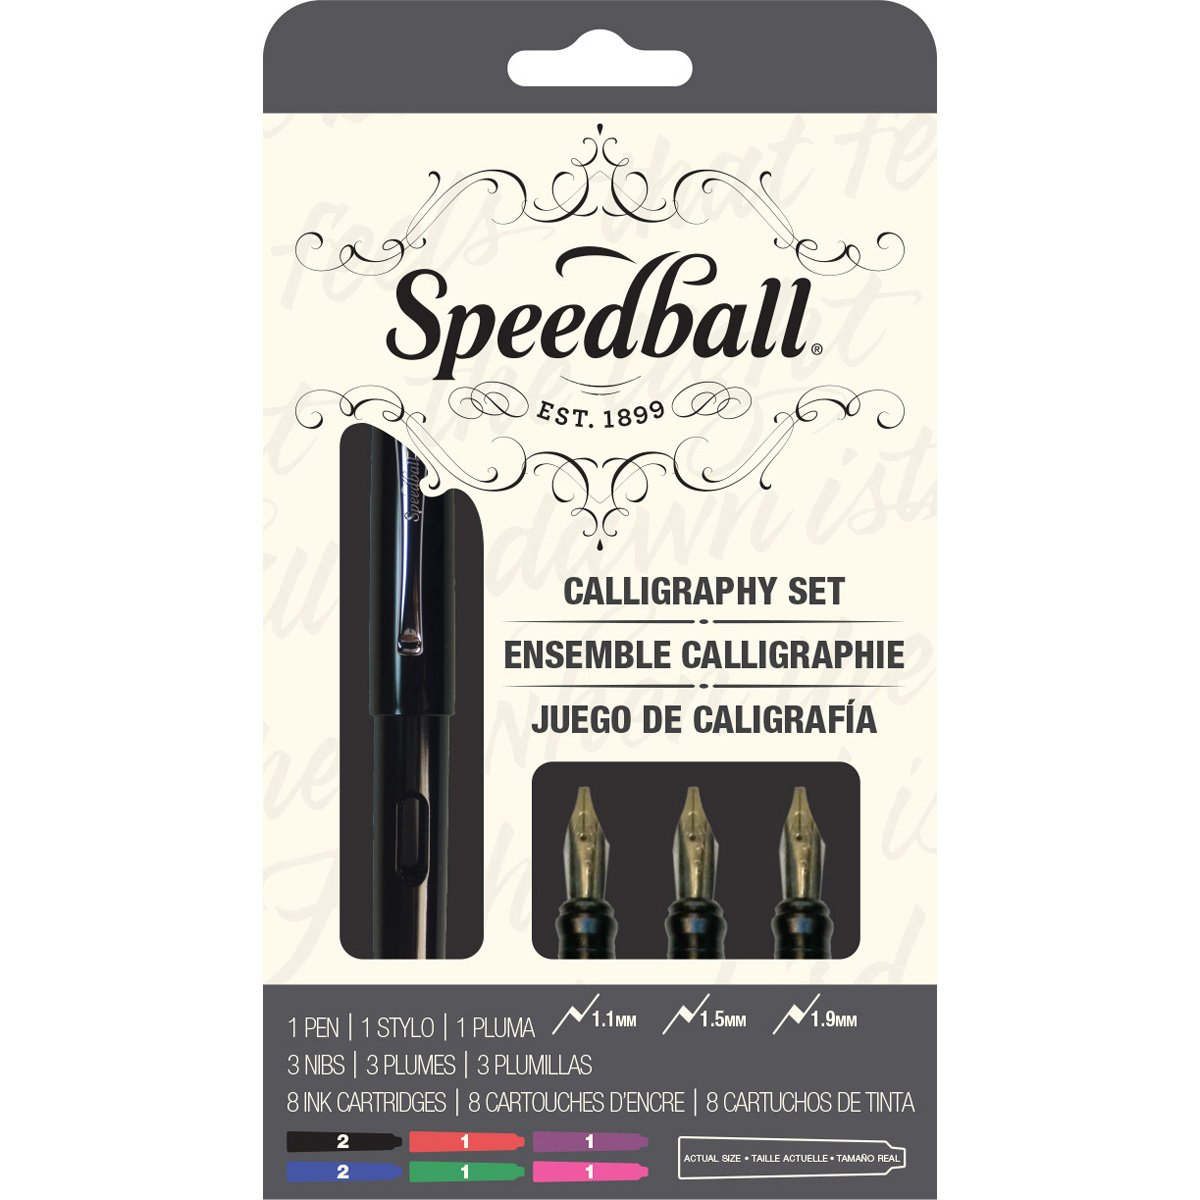 Speedball calligraphy fountain pen set Calligraphy pen amazon